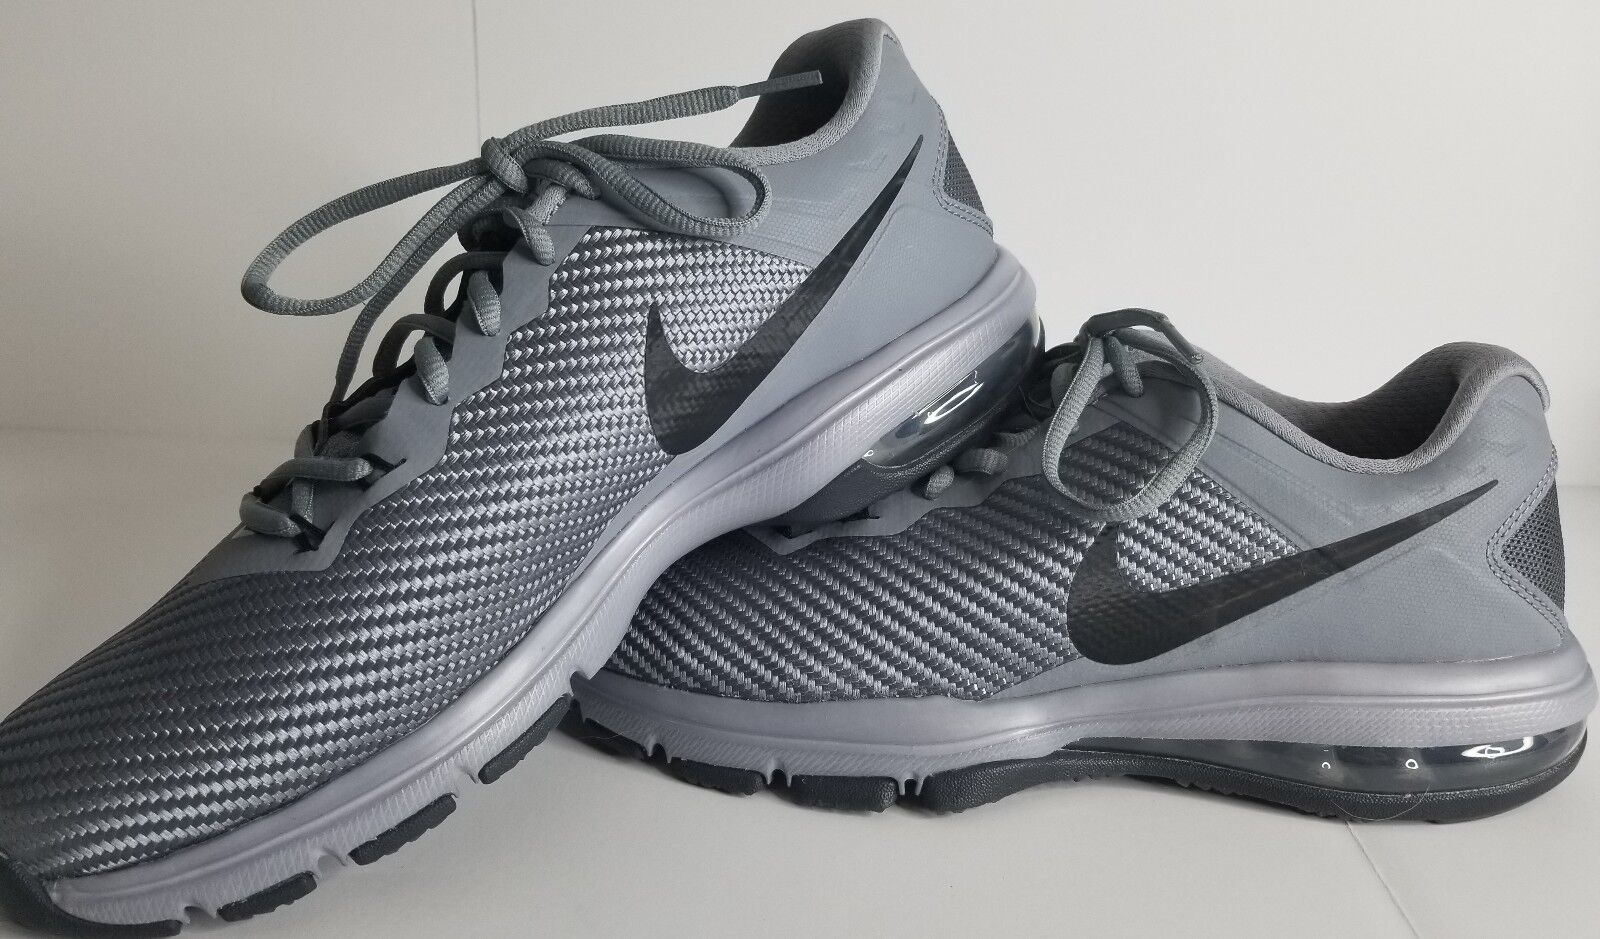 Nike Air Max Full Ride TR 1.5 Mens 869633-011 Cool Gray Training Shoes Size 8.5